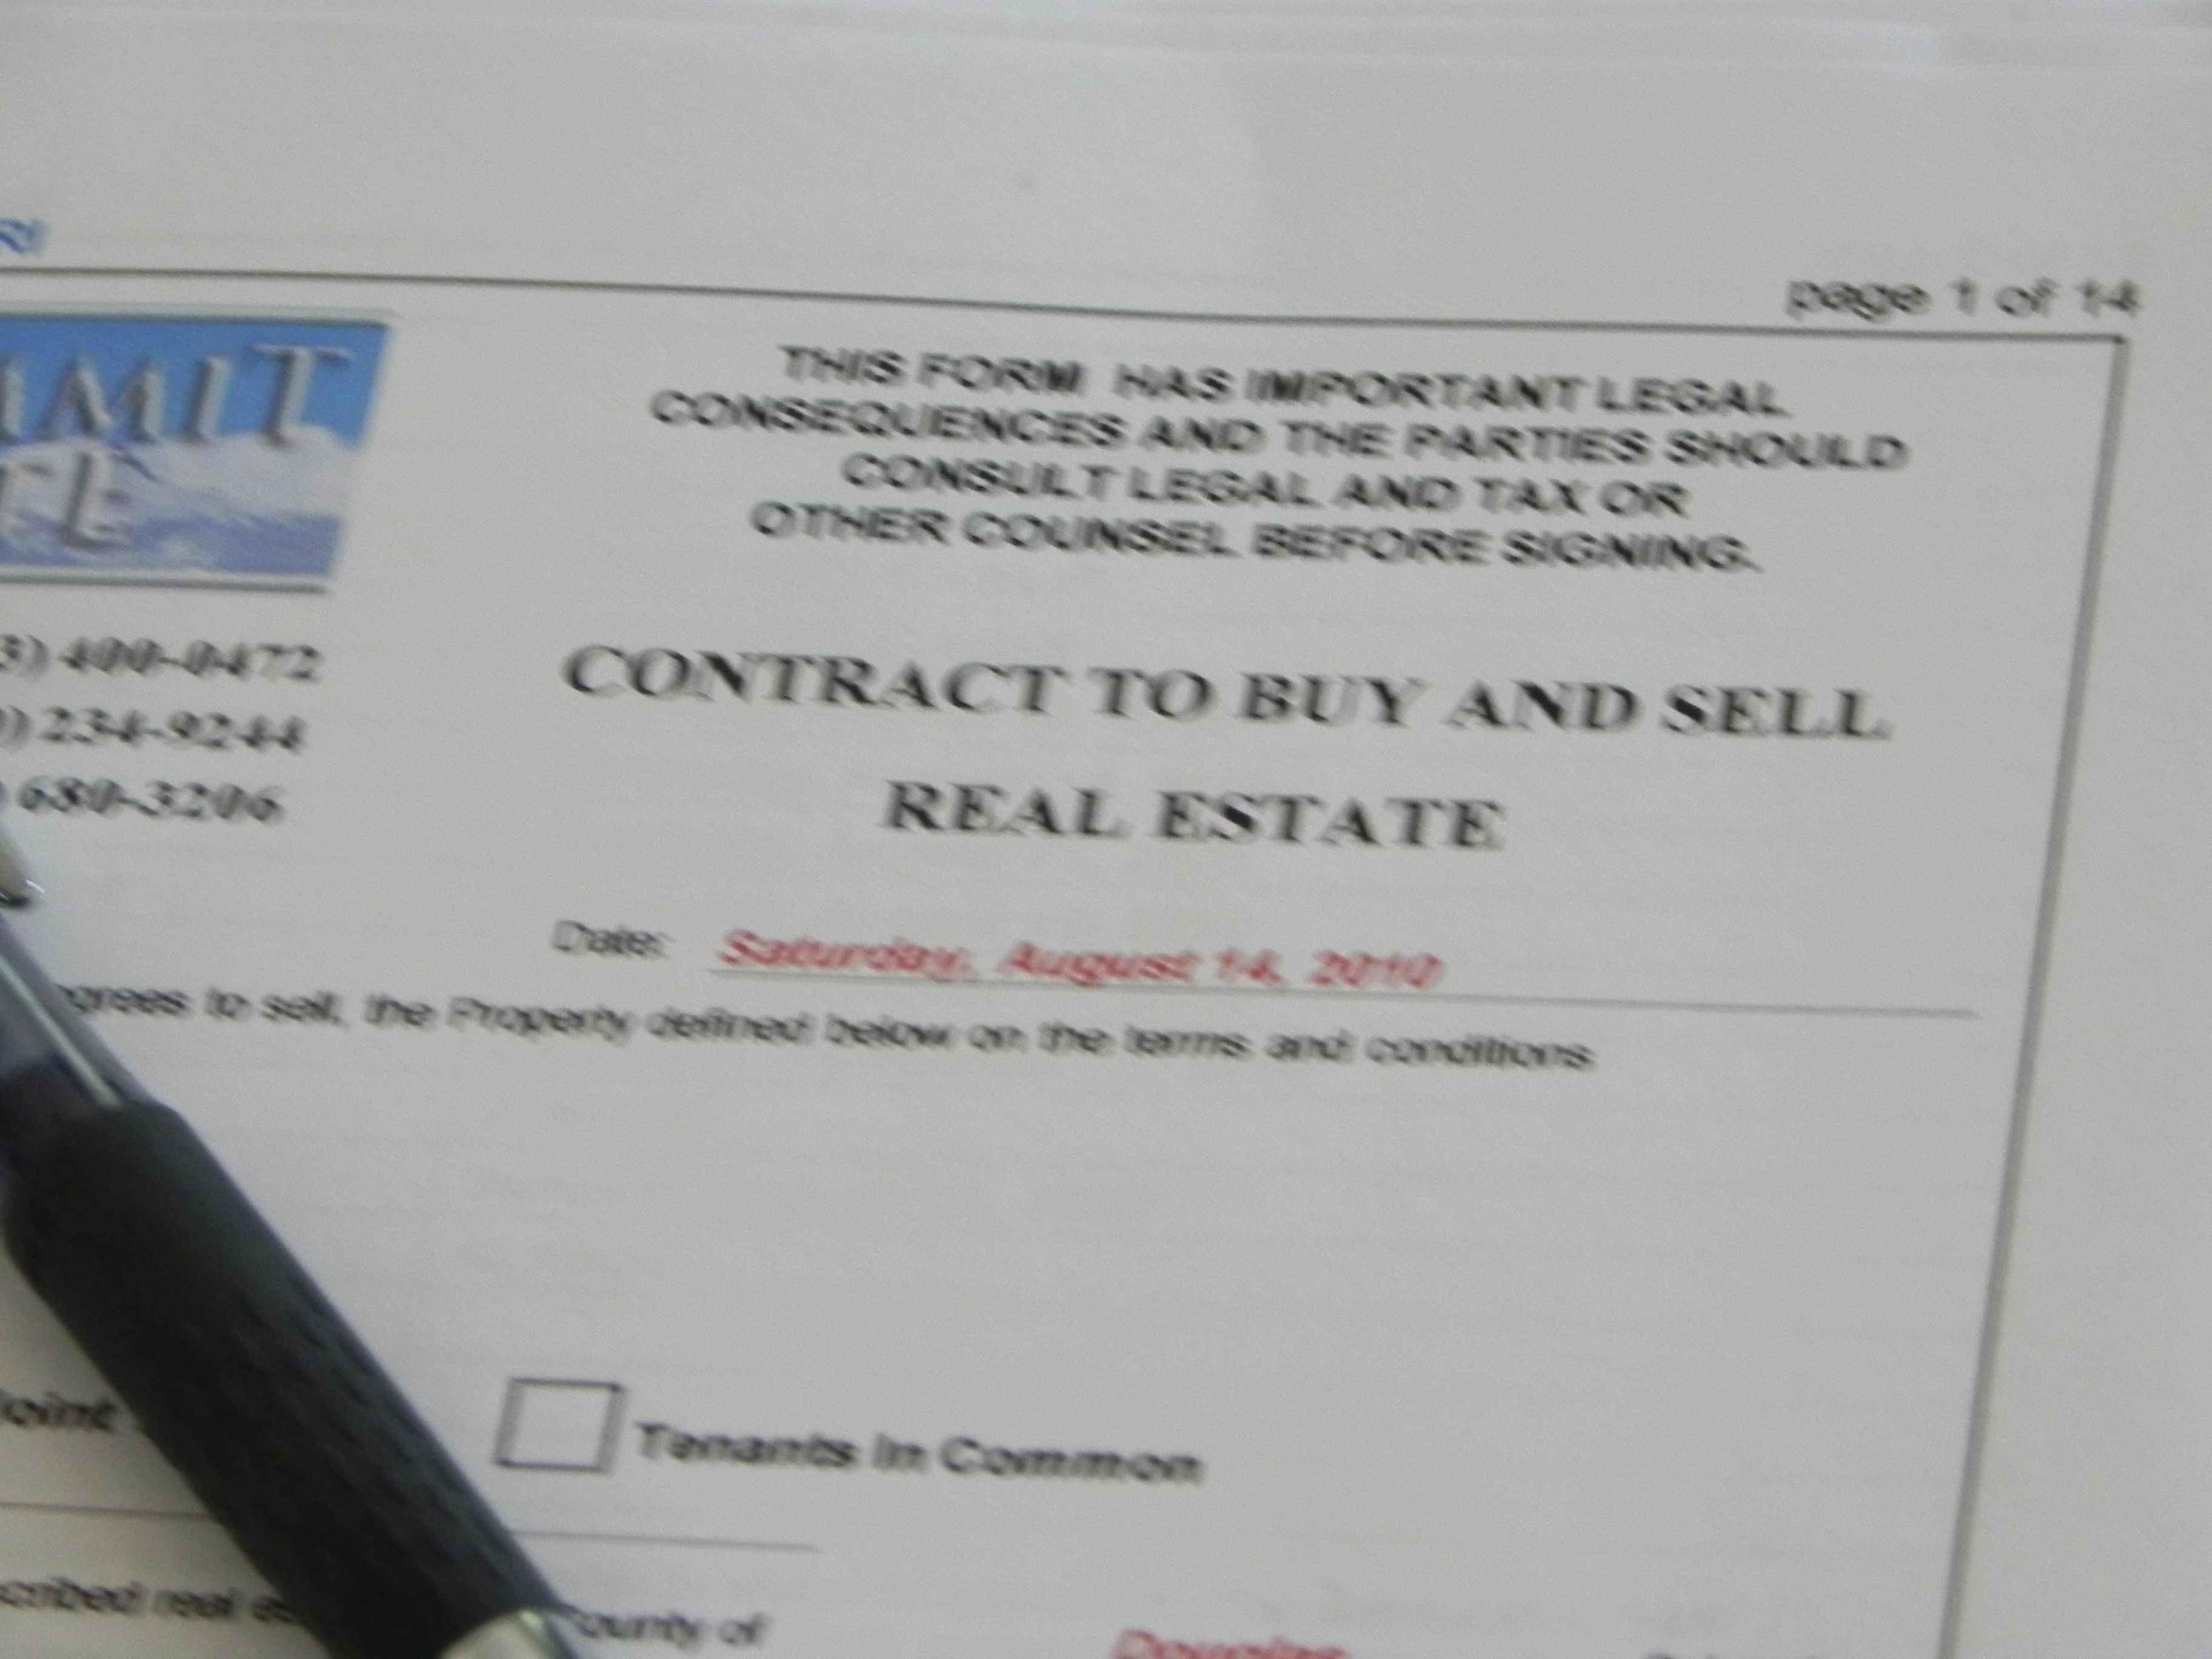 Contract to Buy & Sell